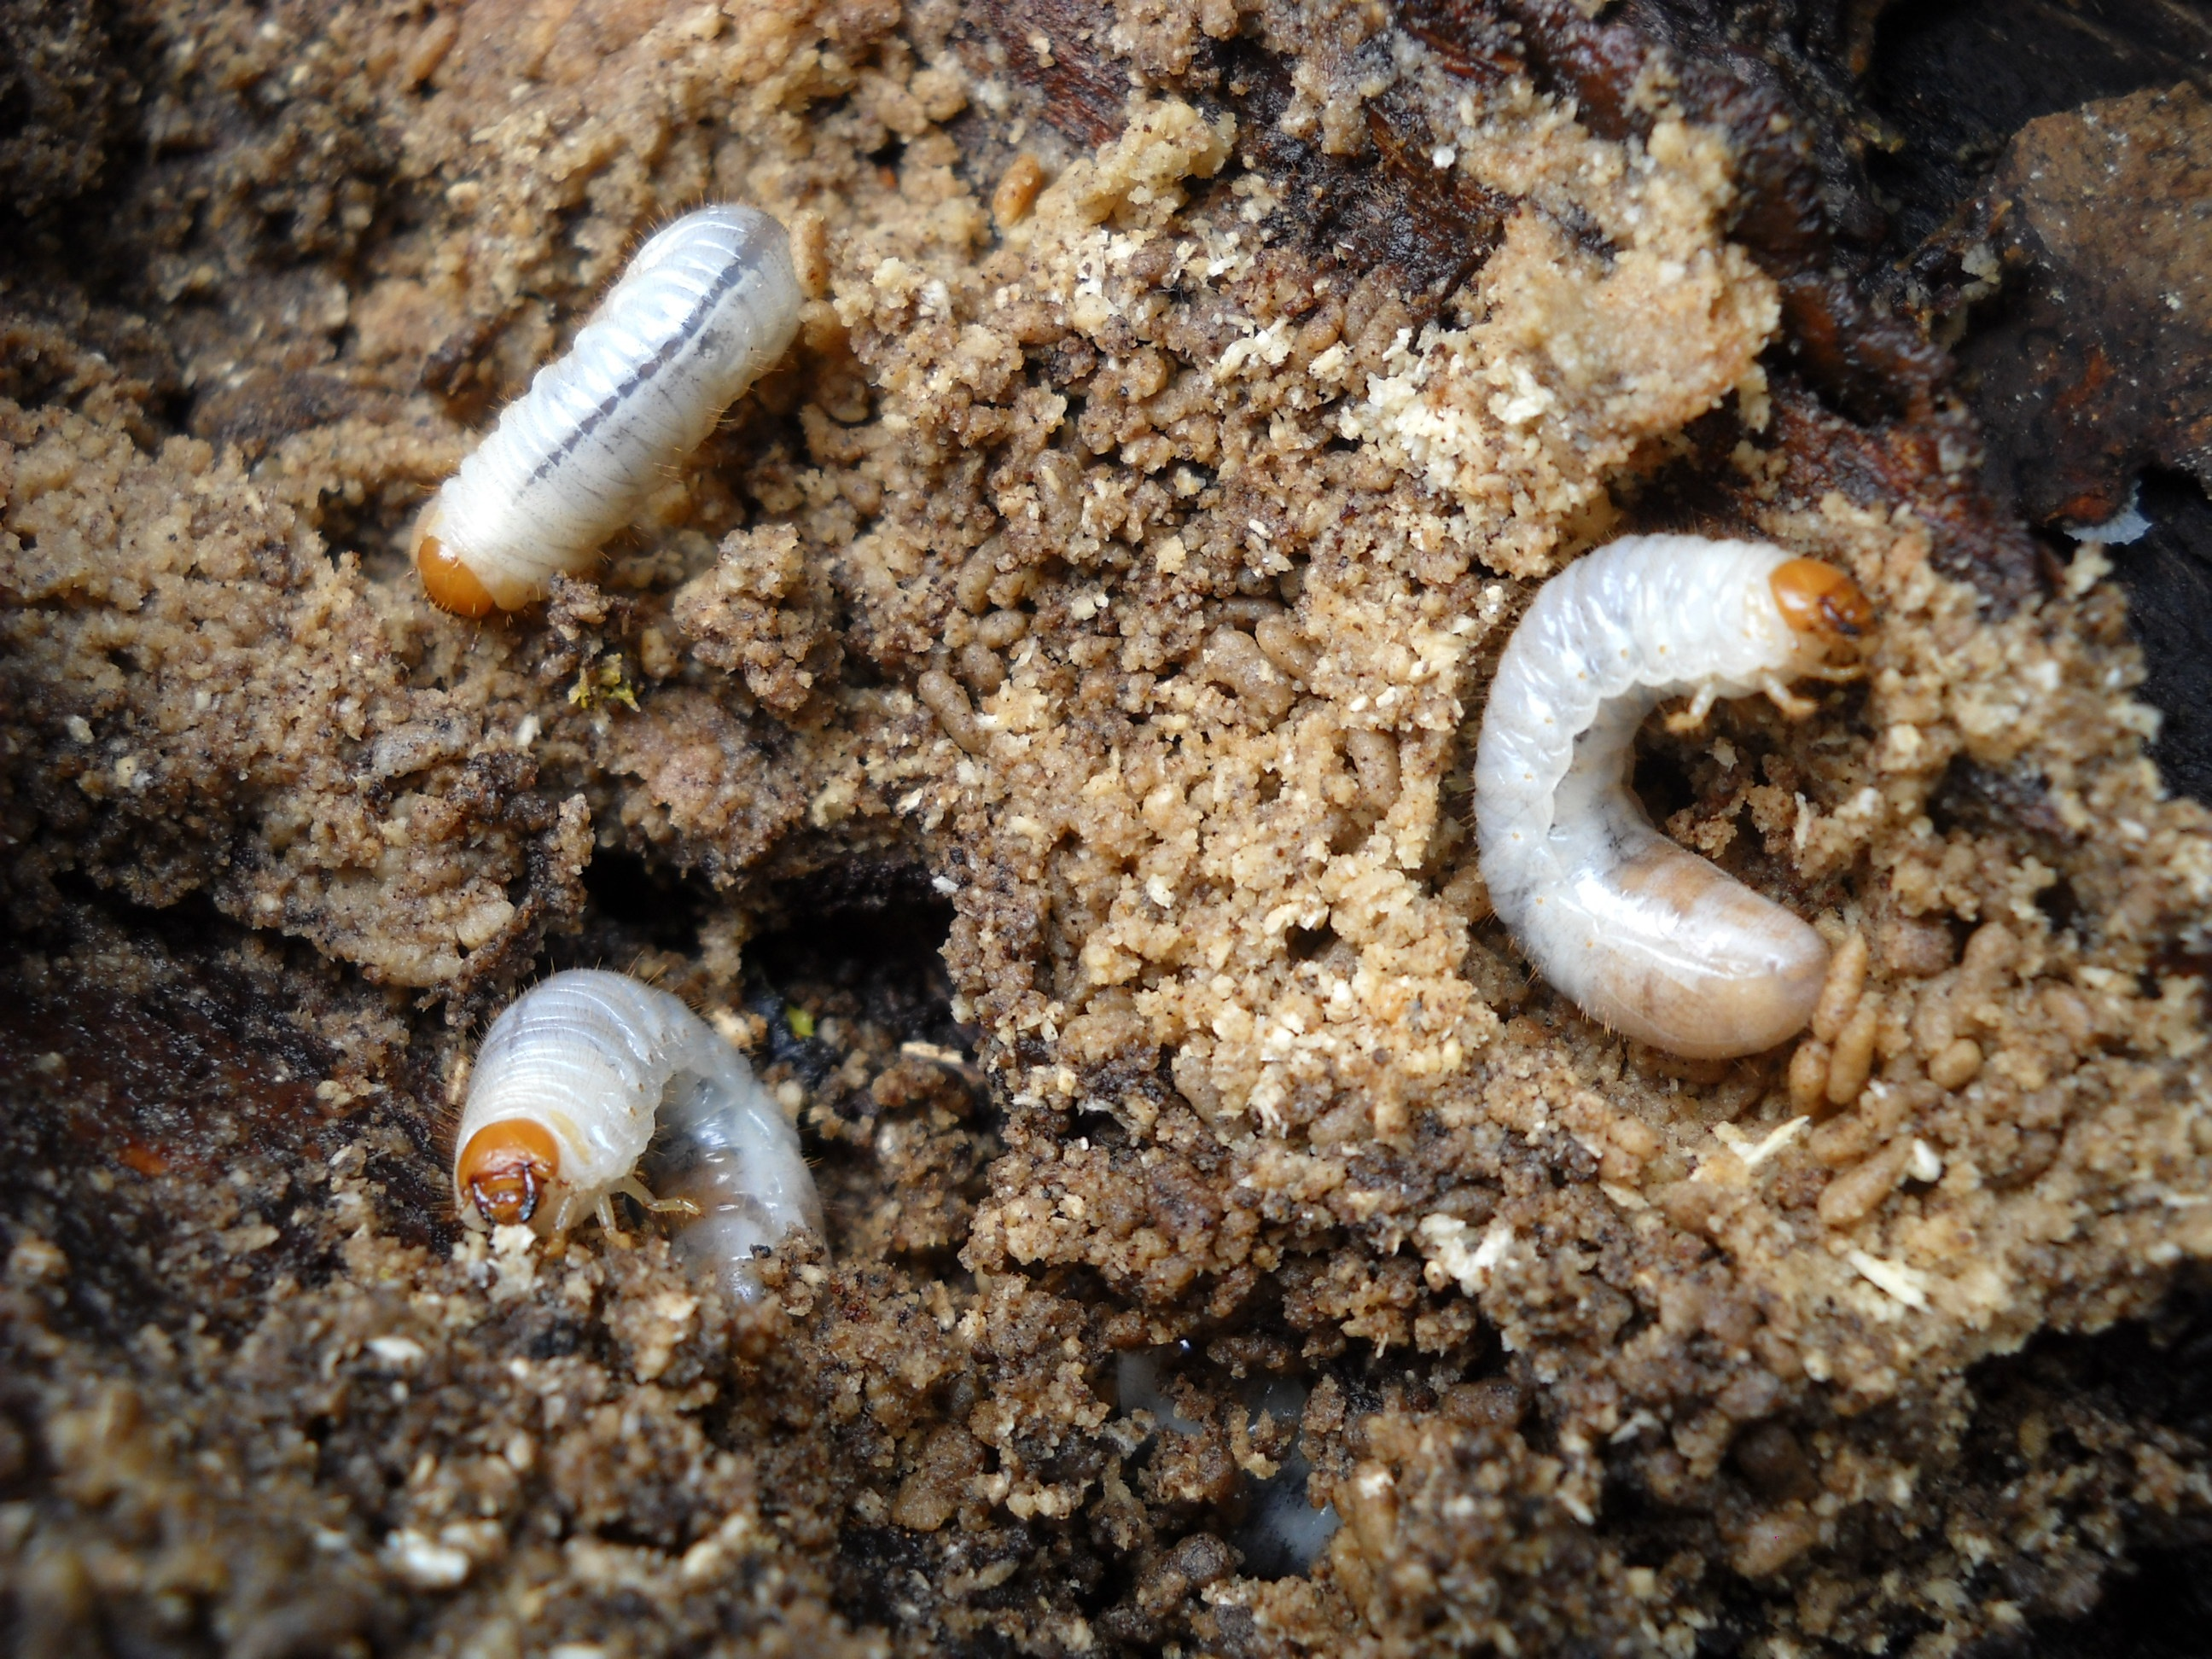 grubs in ground